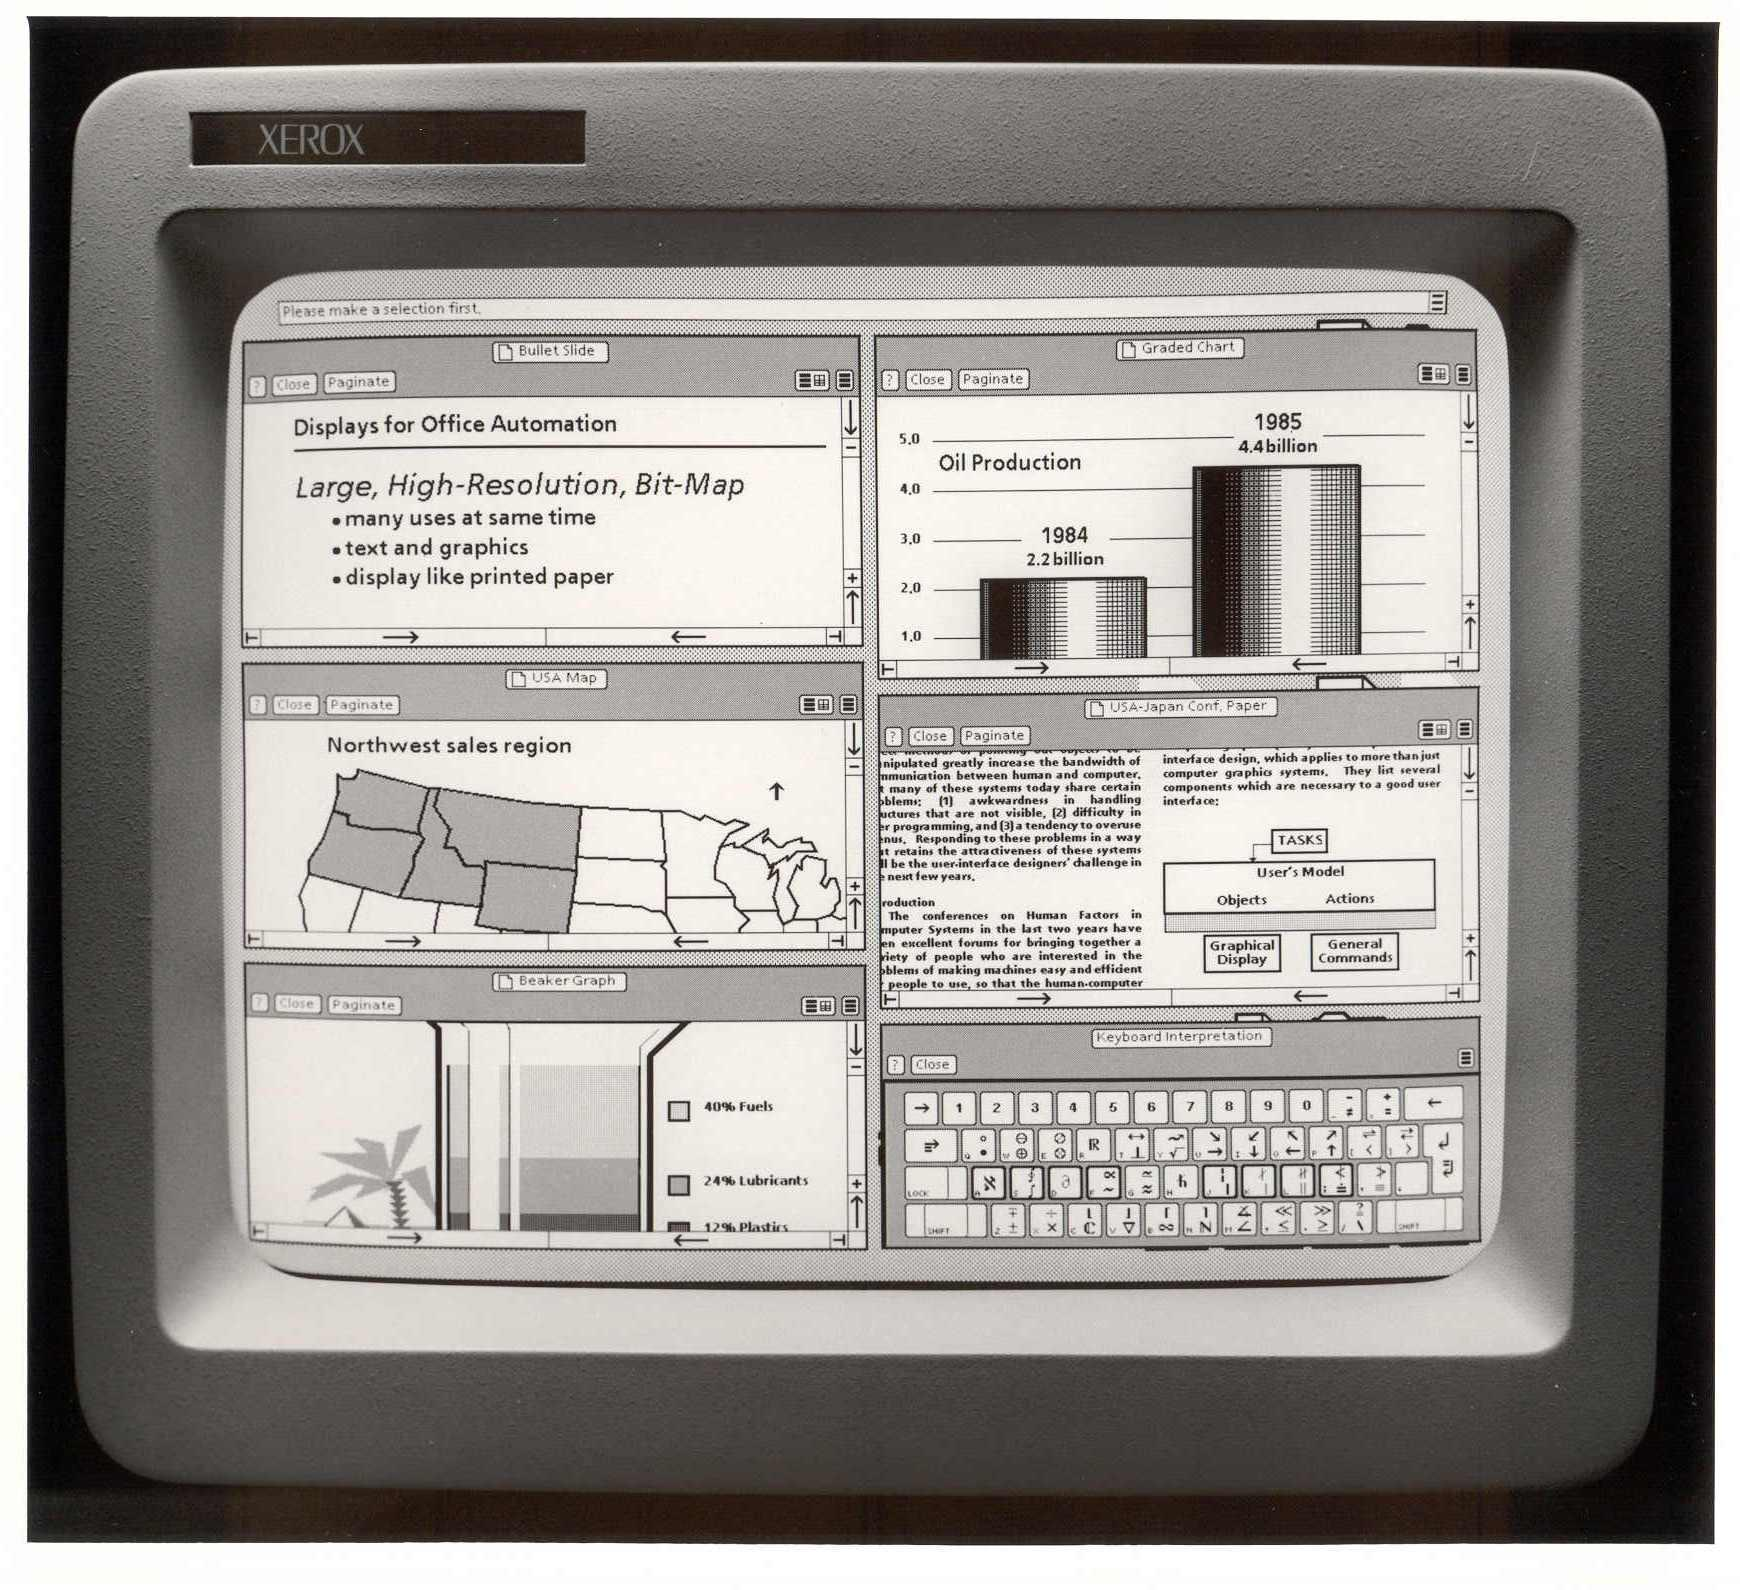 The Xerox Star workstation introduced the first commercial Graphical User Interface (GUI) operating system in 1973